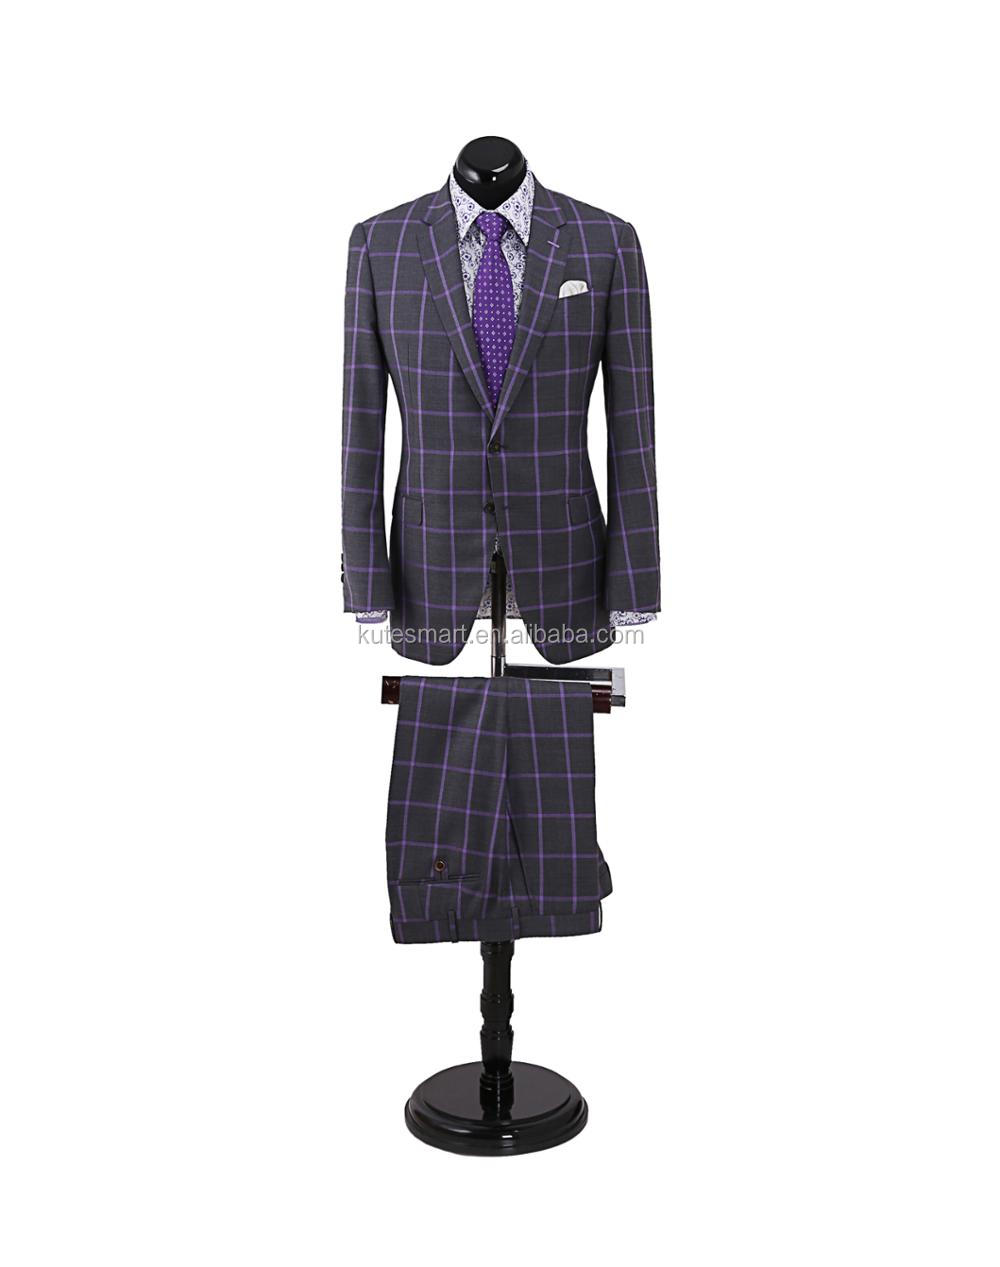 Suits Product Type and Business Suits Style Men tailor made bespoke custom suit